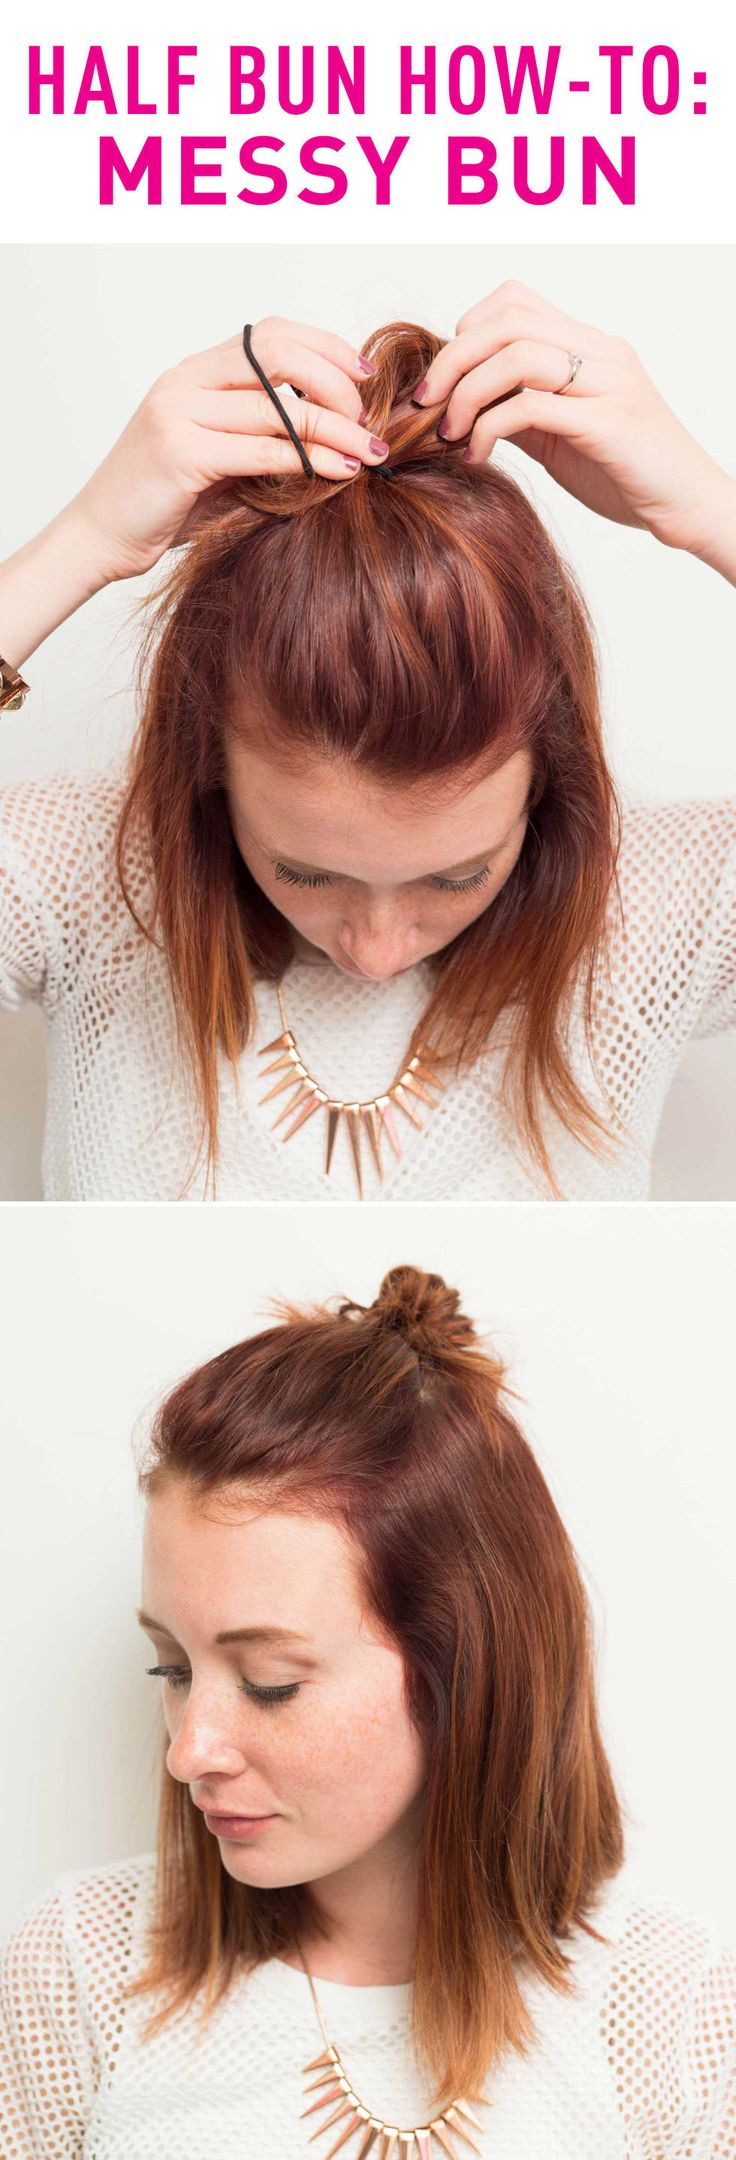 Practical Hairstyles For Moms 274 Best Images About Hairstyles For Medium Length Hair On